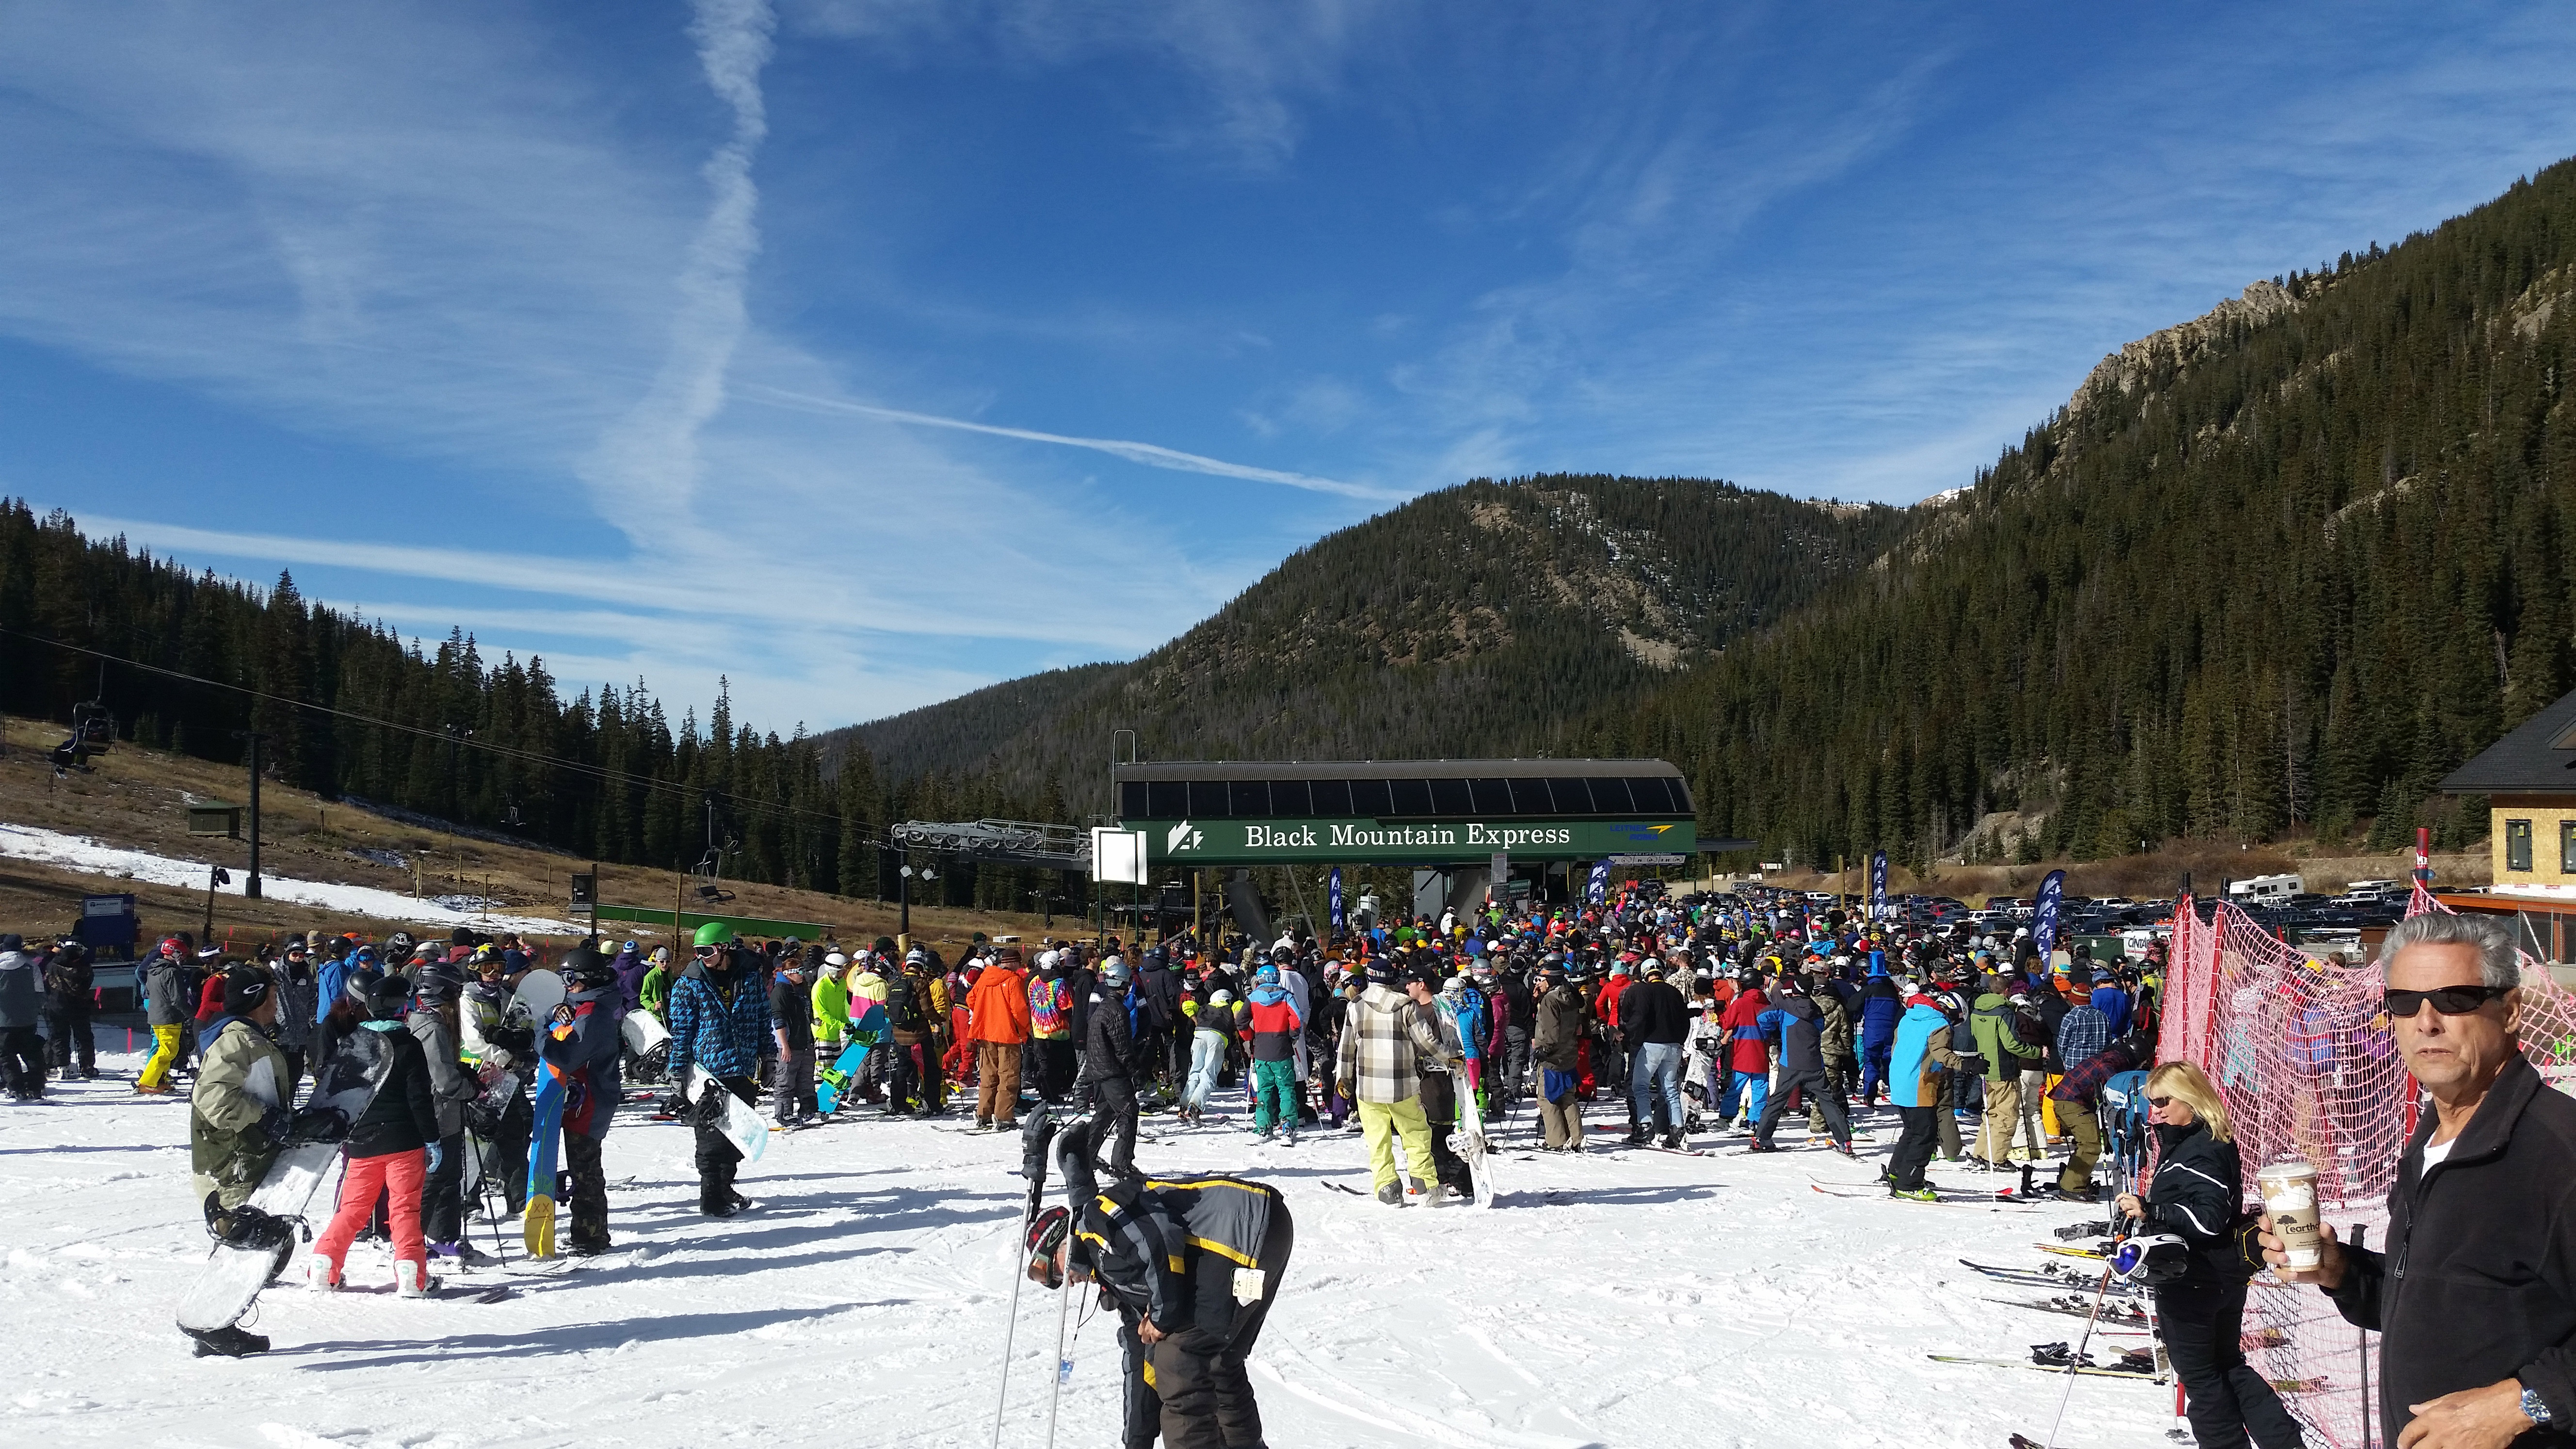 Opening day at A Basin (credit: CBS)